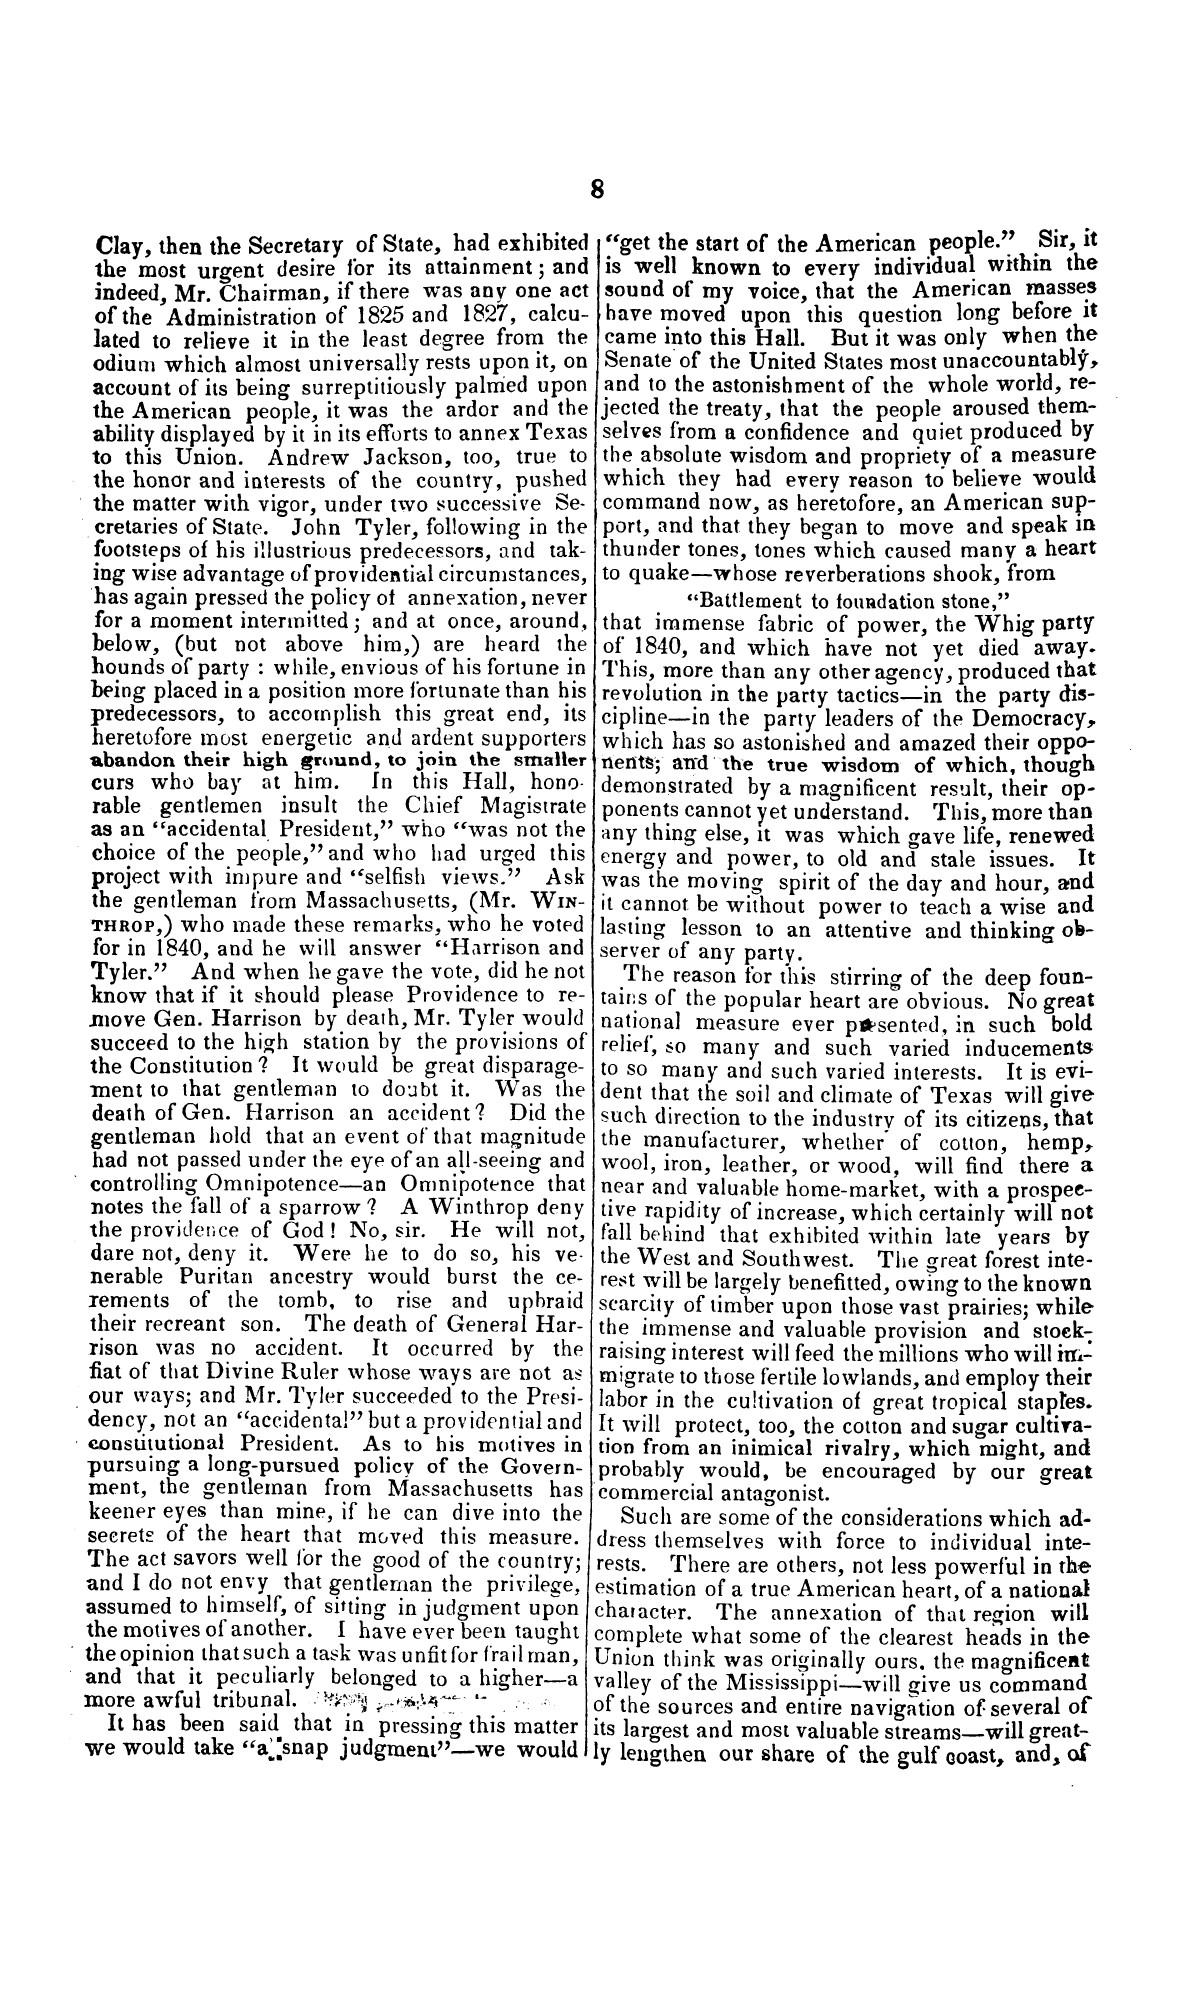 Speech of Hon. Wm. Lowndes Yancey, of Alabama, on the annexation of Texas to the United States, delivered in the House of Representatives, Jan. 7, 1845.                                                                                                      [Sequence #]: 8 of 14